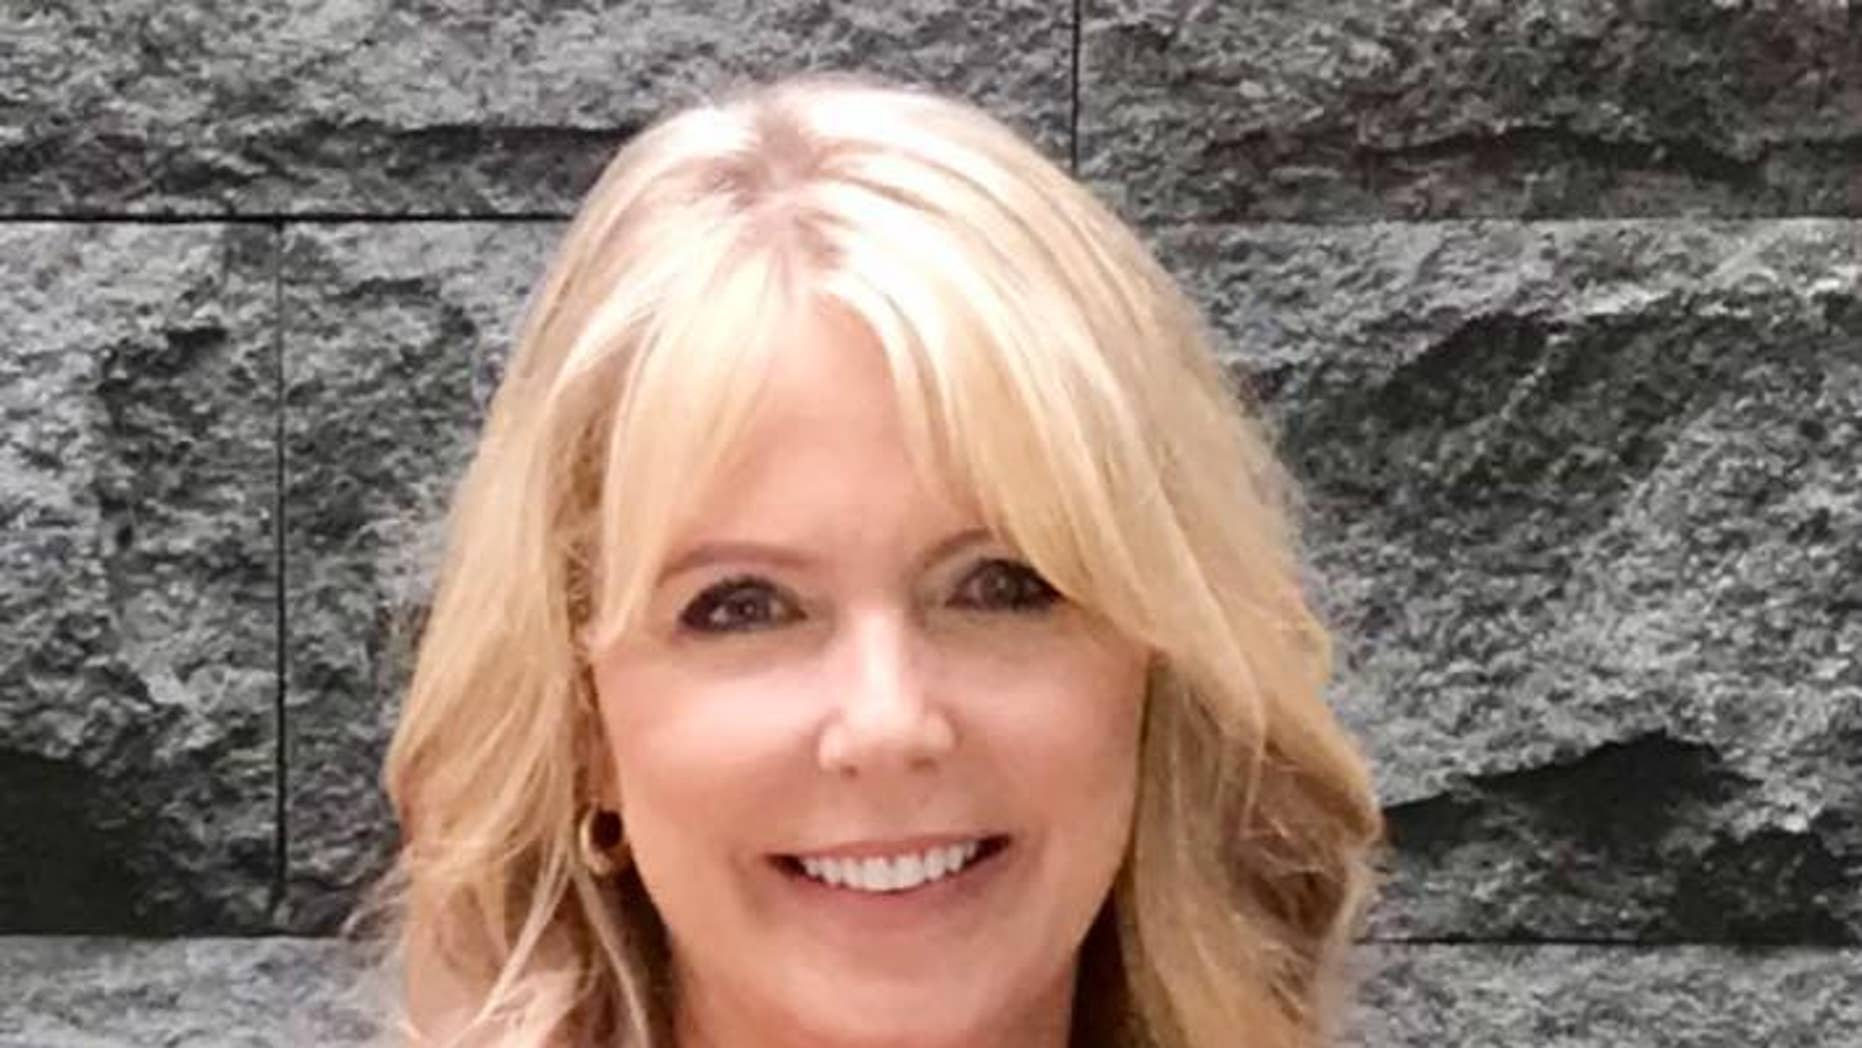 South Dakota TV journalist Angela Kennecke says she noticed red flags in the weeks leading up to her daughter's death.